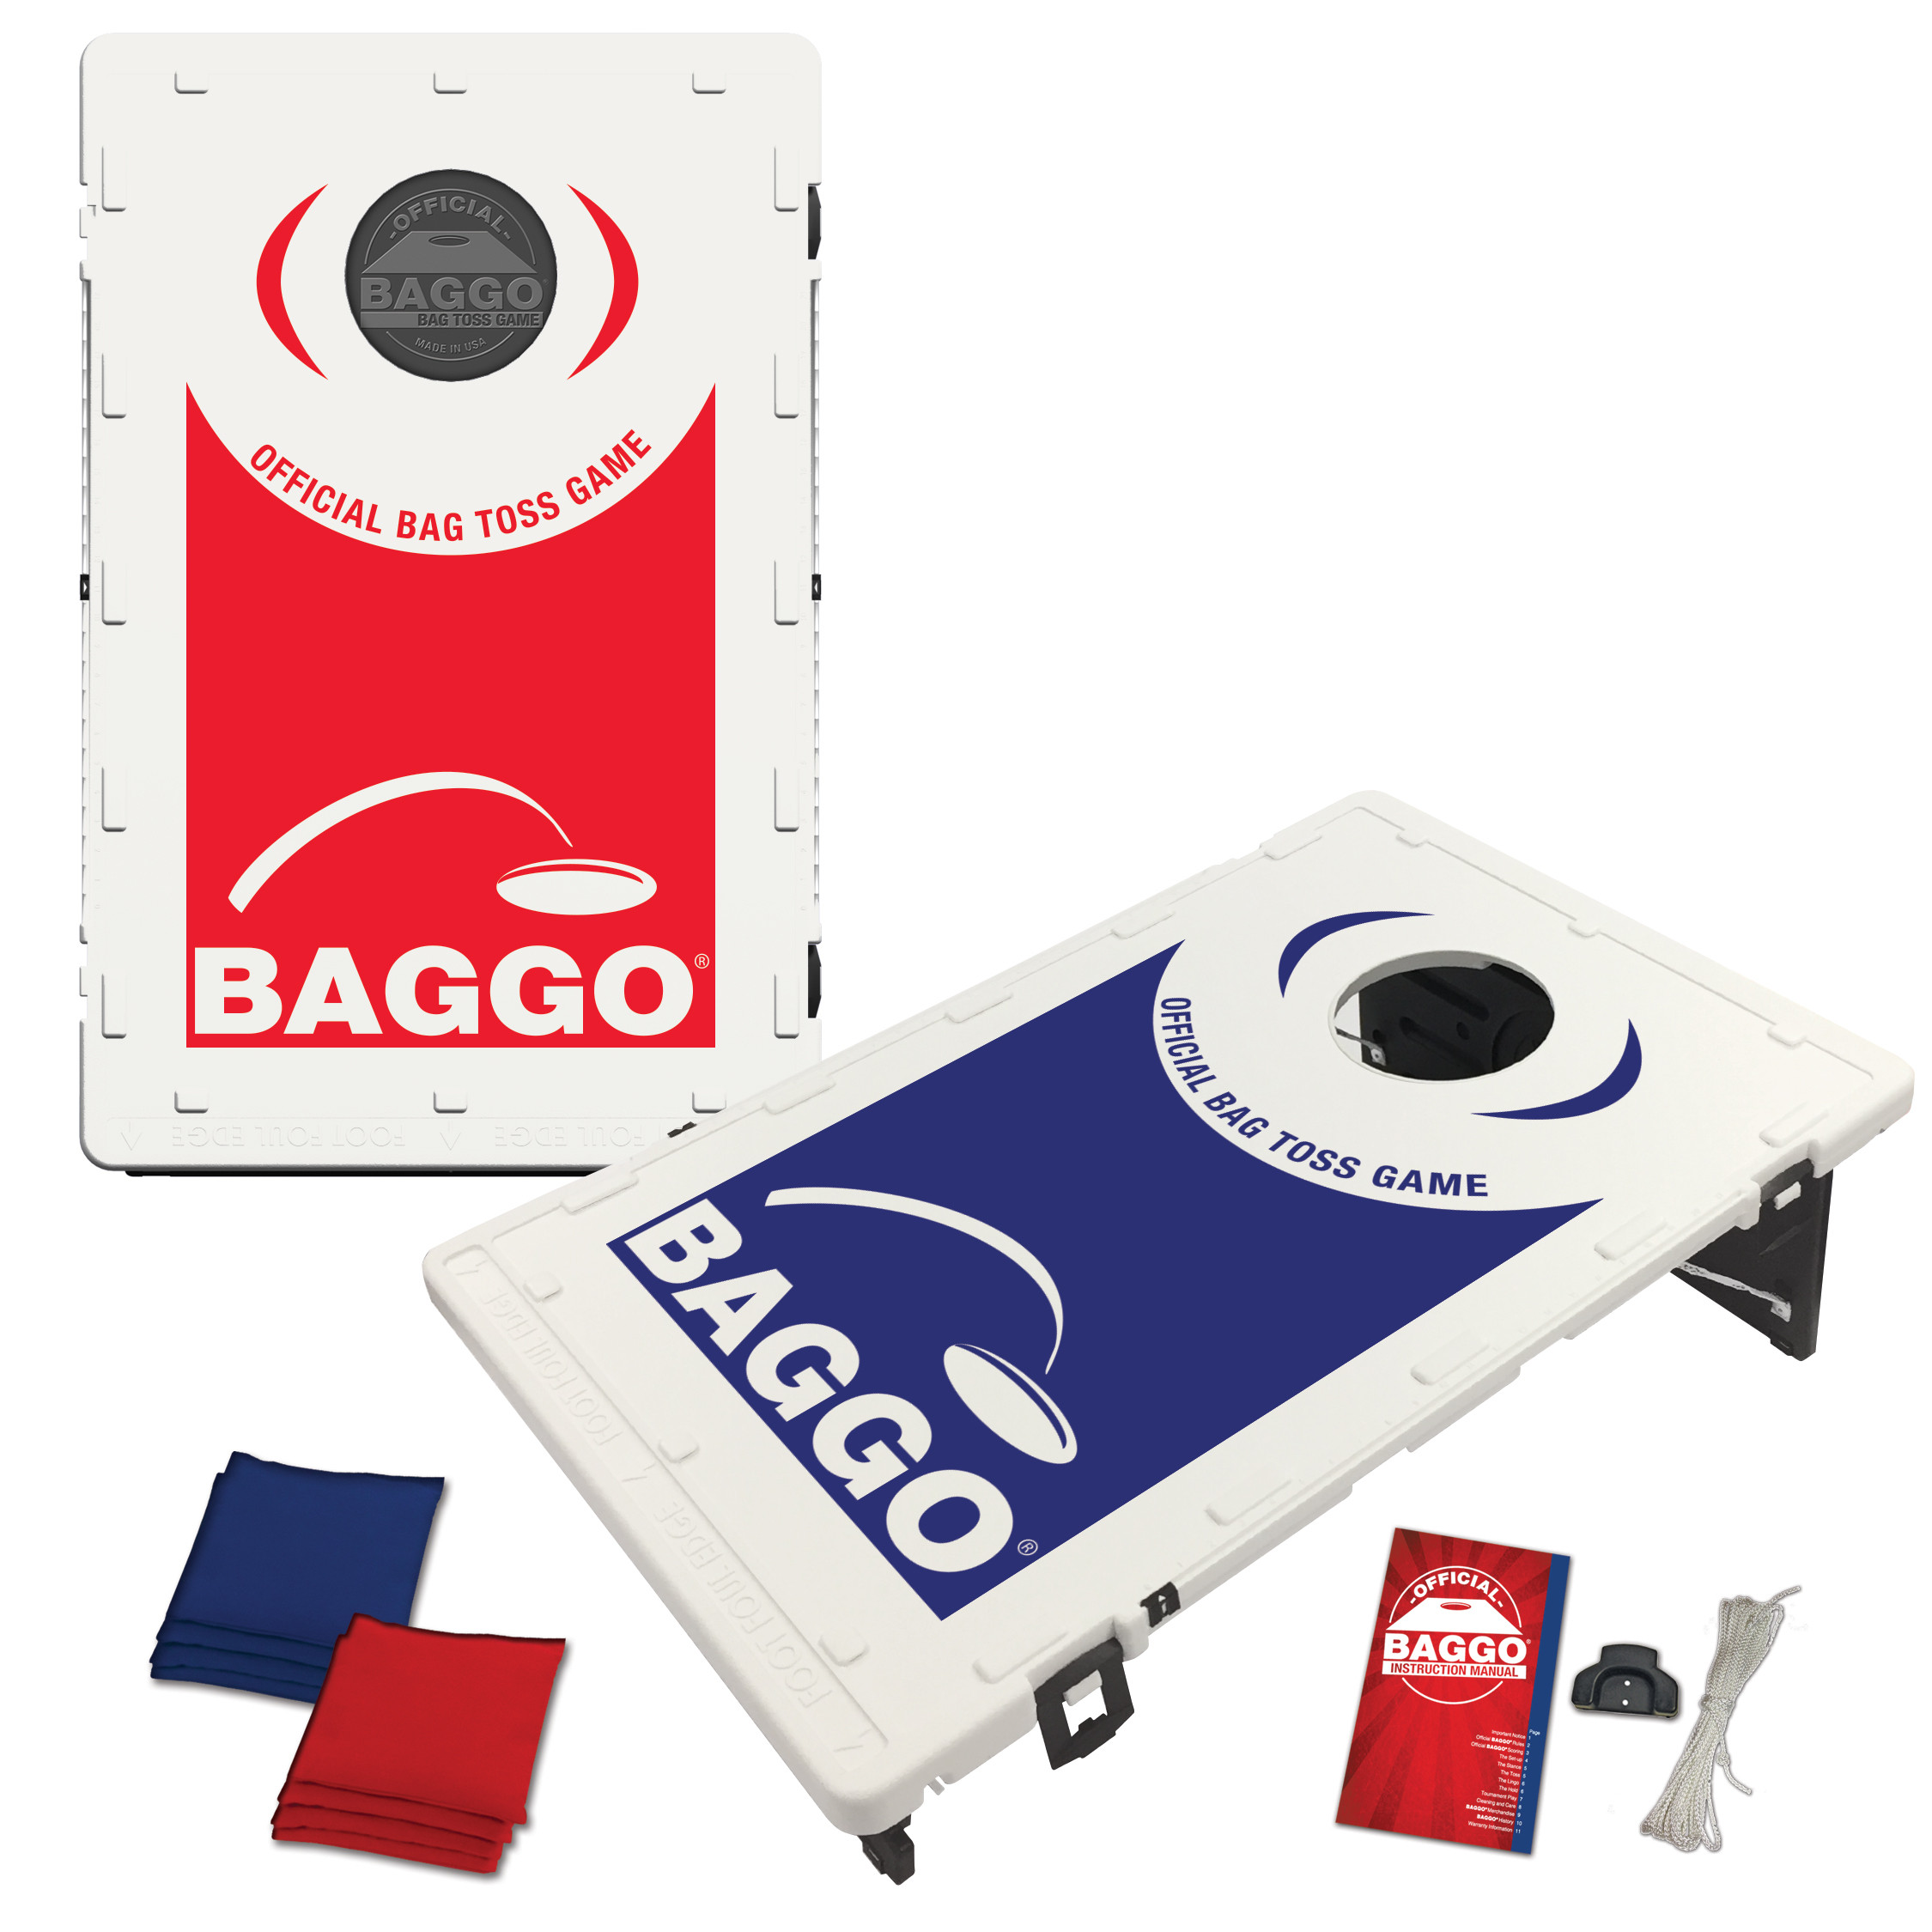 Genial Family Backyard Baggo Game Portable Cornhole Boards